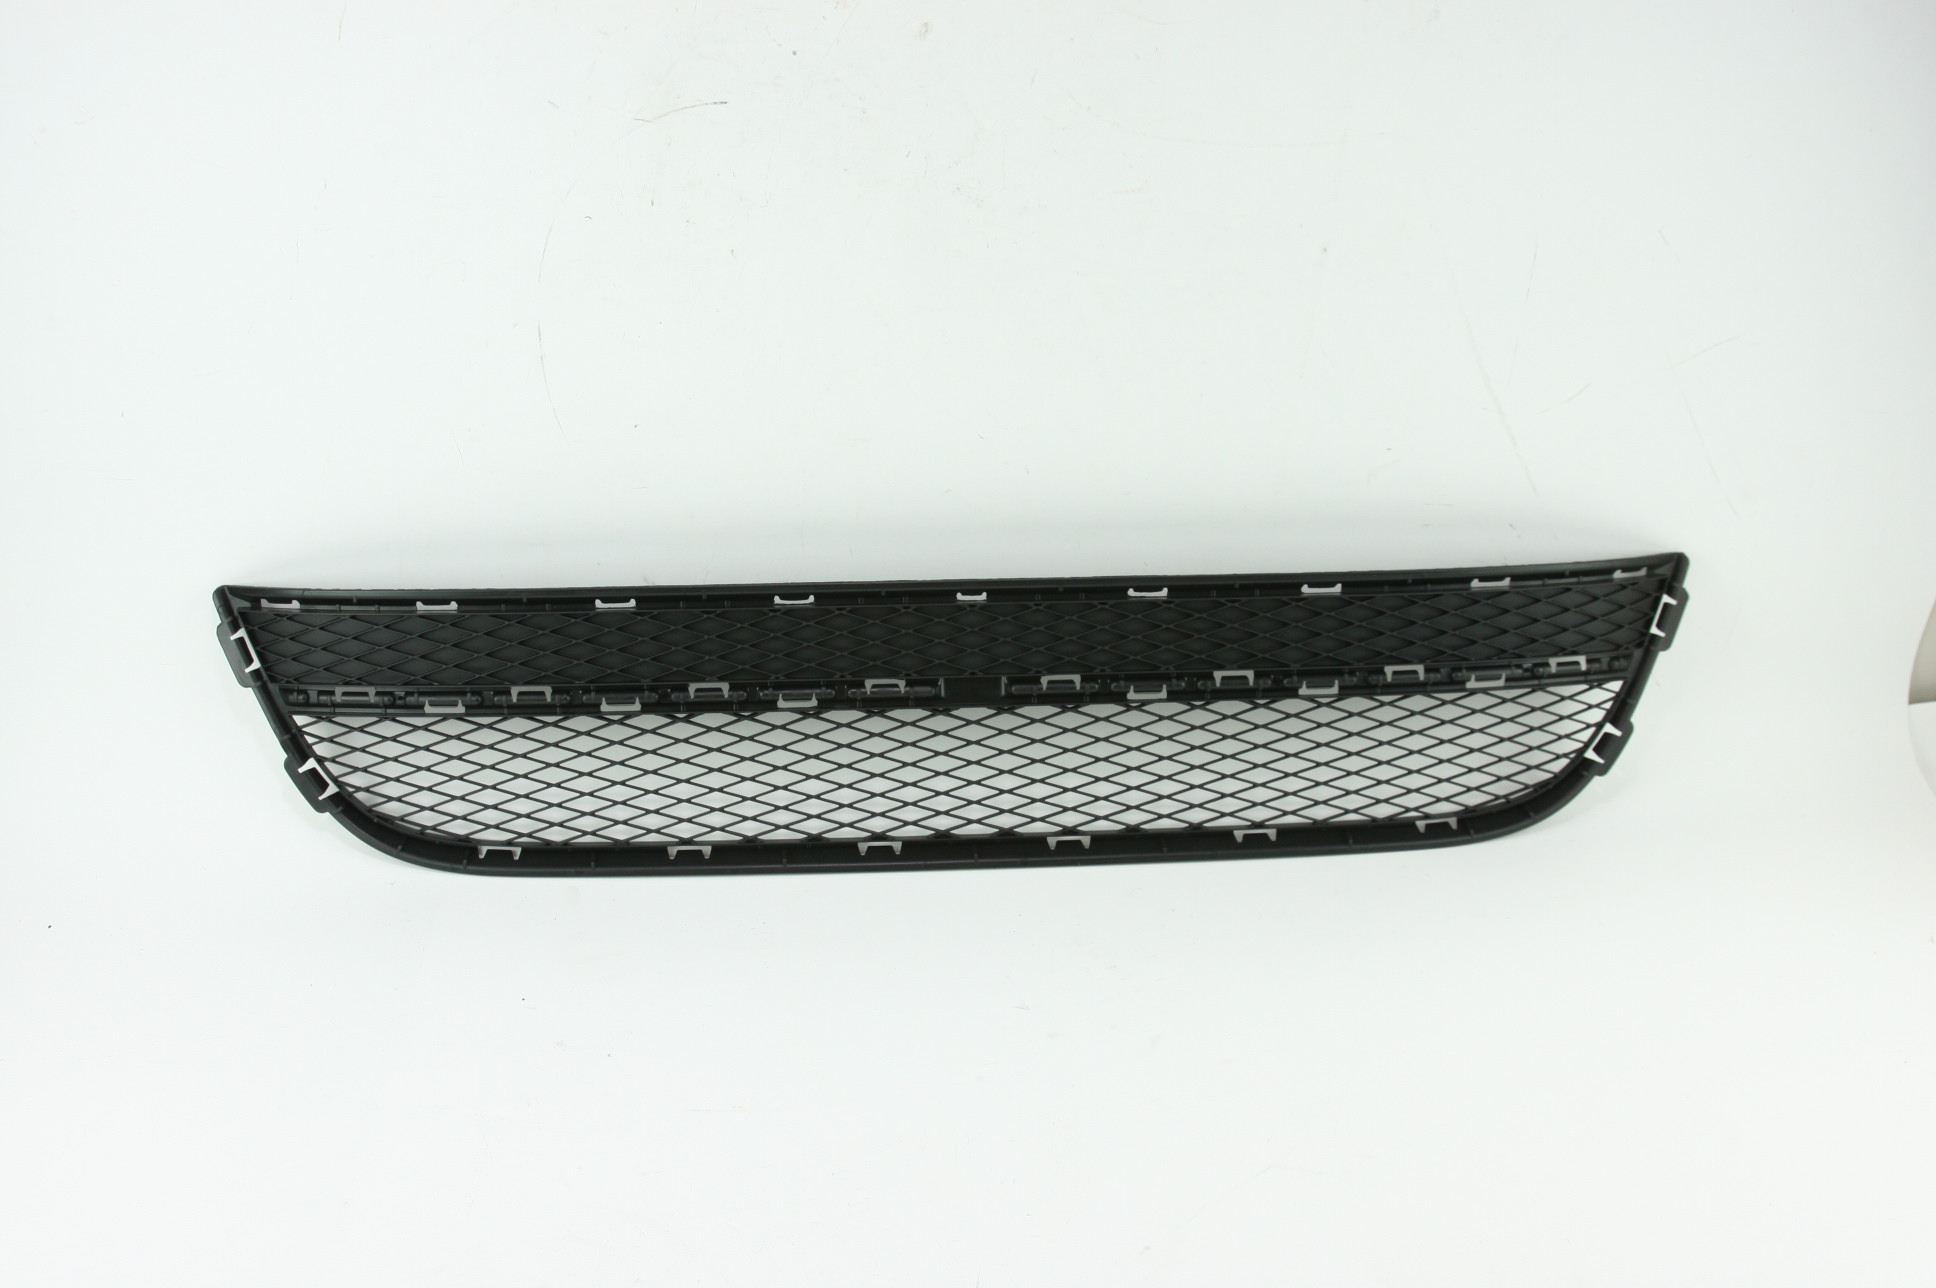 New OEM 5N08536779B9 Volkswagen VW Tiguan Front Bumper Lower Bottom Grille Grill - image 1